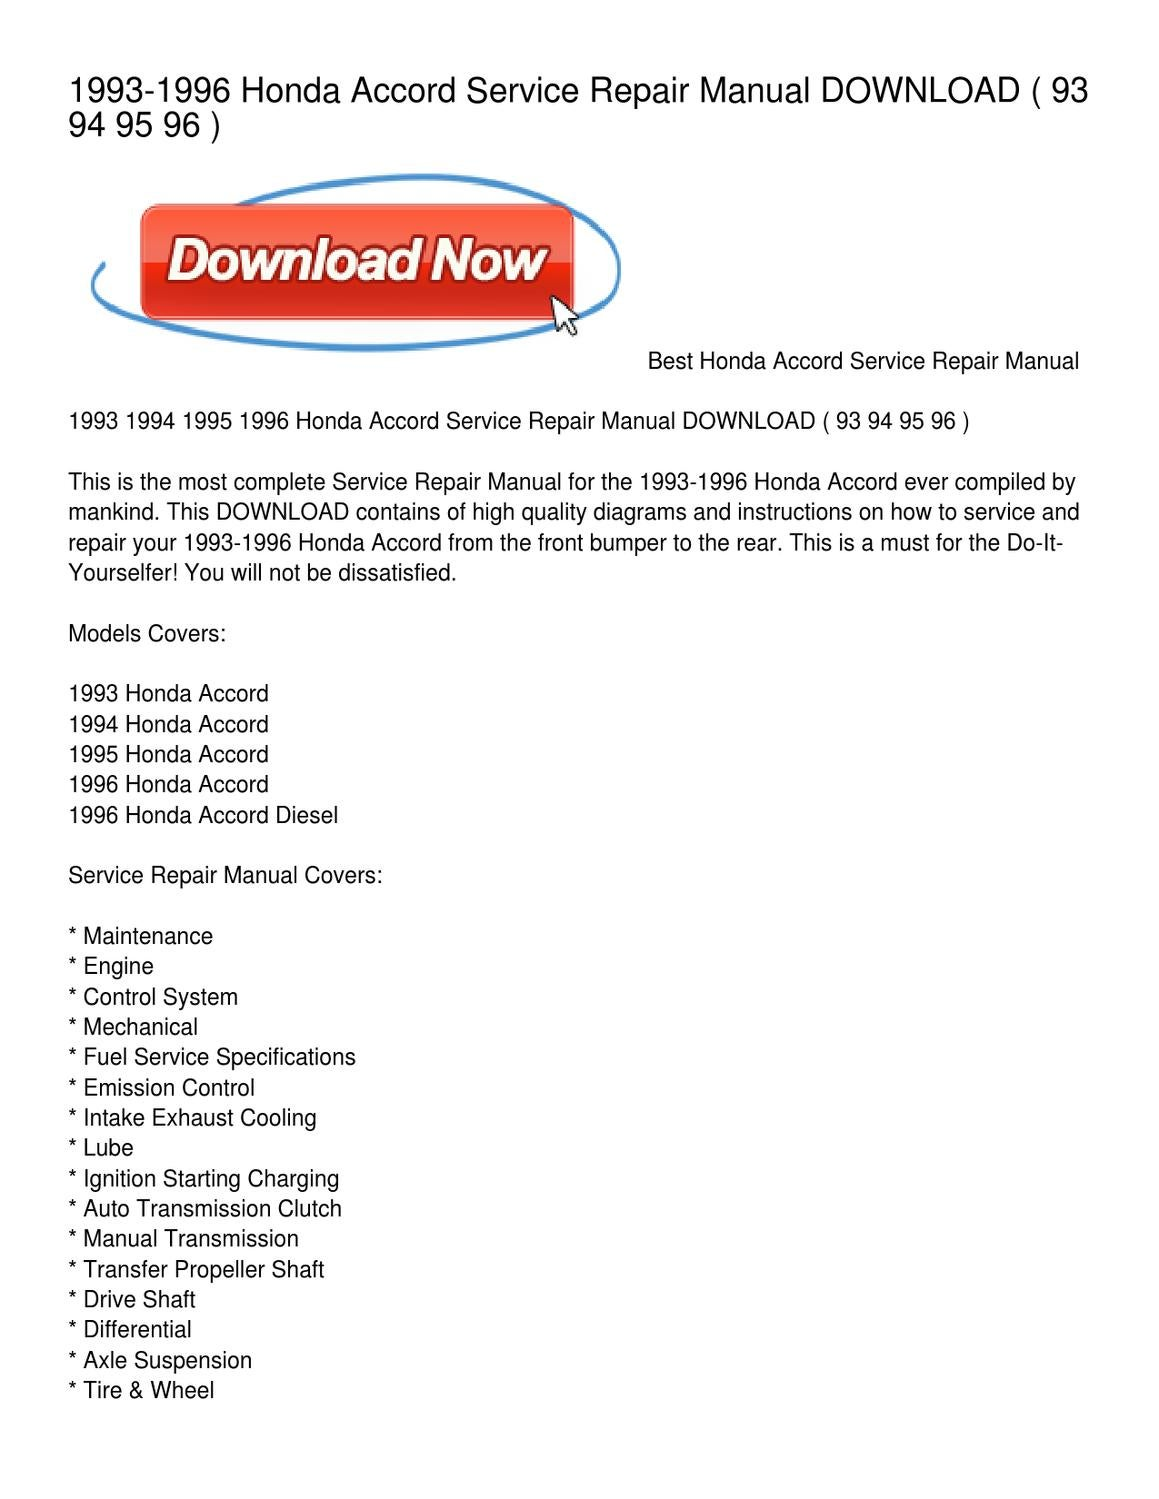 94 Accord Transmission Wiring Diagrams 1997 Honda System Library 1993 1996 Service Repair Manual Download By Whitney Rh Issuu Com